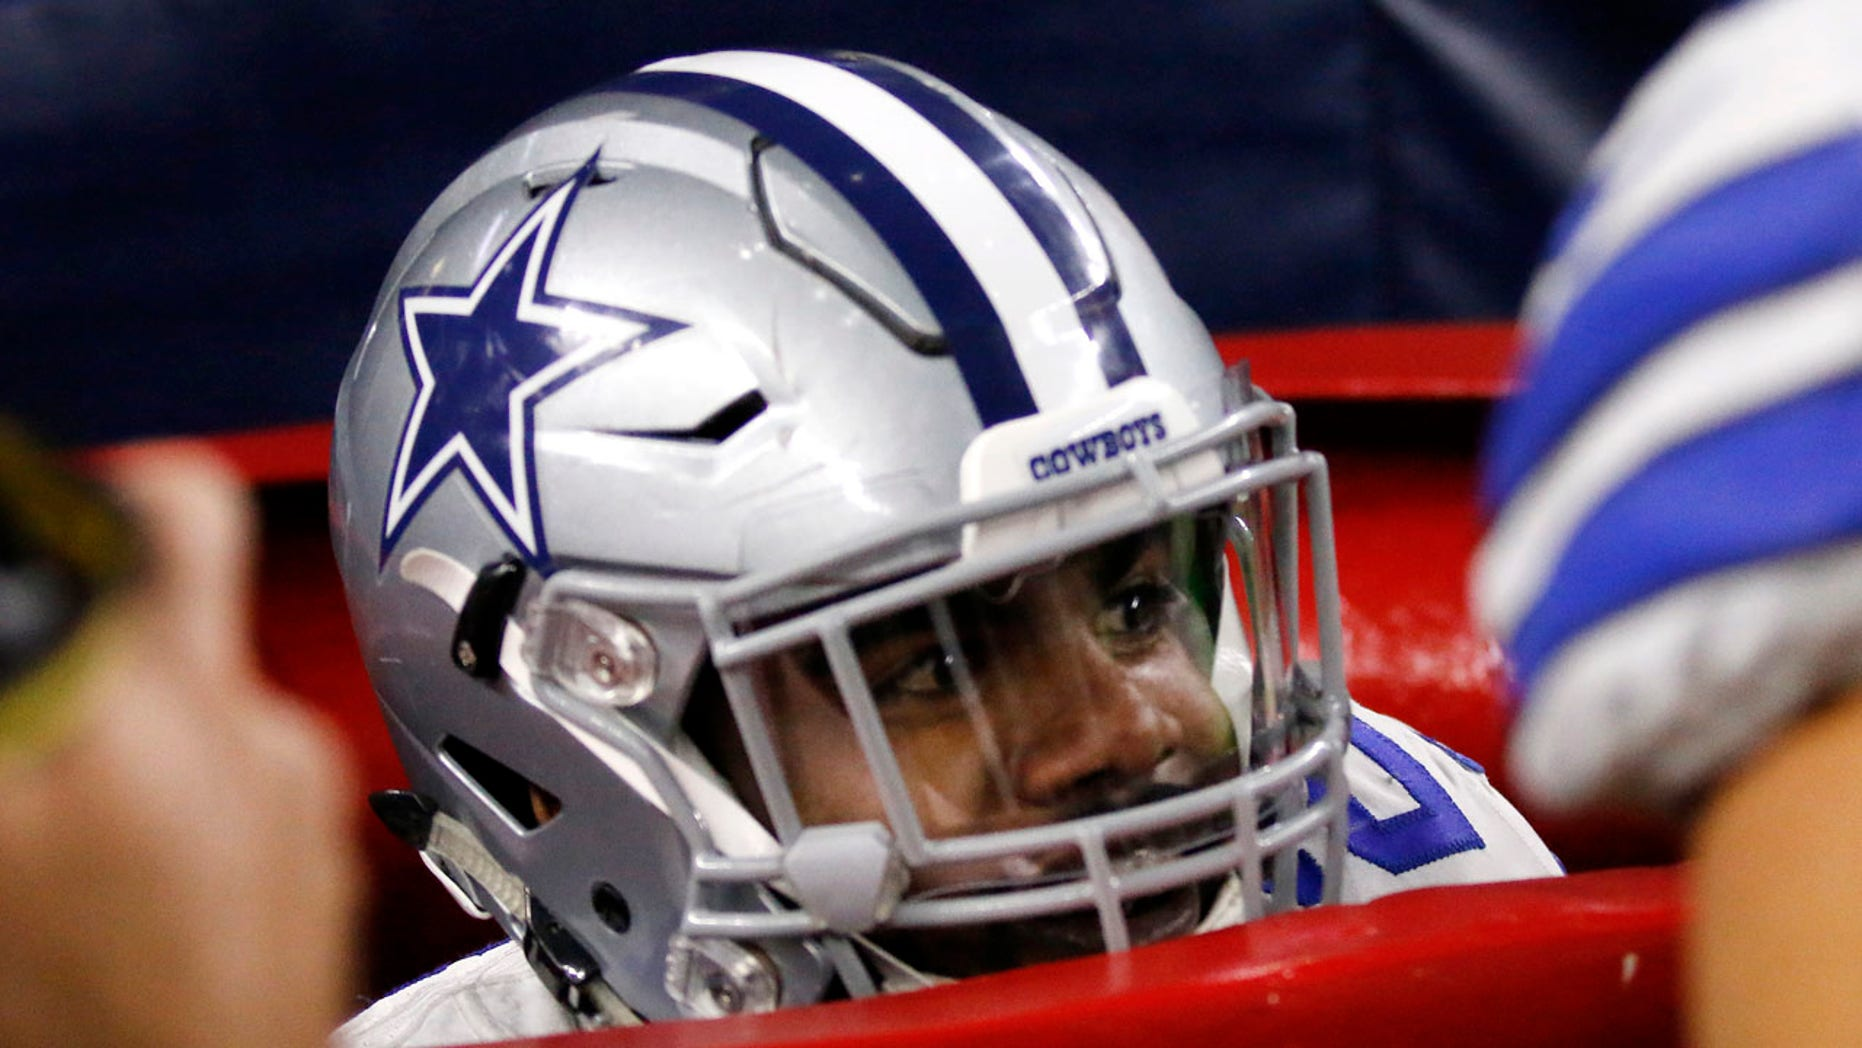 Dallas Cowboys running back Ezekiel Elliott peeks out of a large Salvation Army kettle after jumping into it celebrating a touchdown he scored on a running play in the first half of an NFL football game against the Tampa Bay Buccaneers on Sunday, Dec. 18, 2016, in Arlington, Texas.